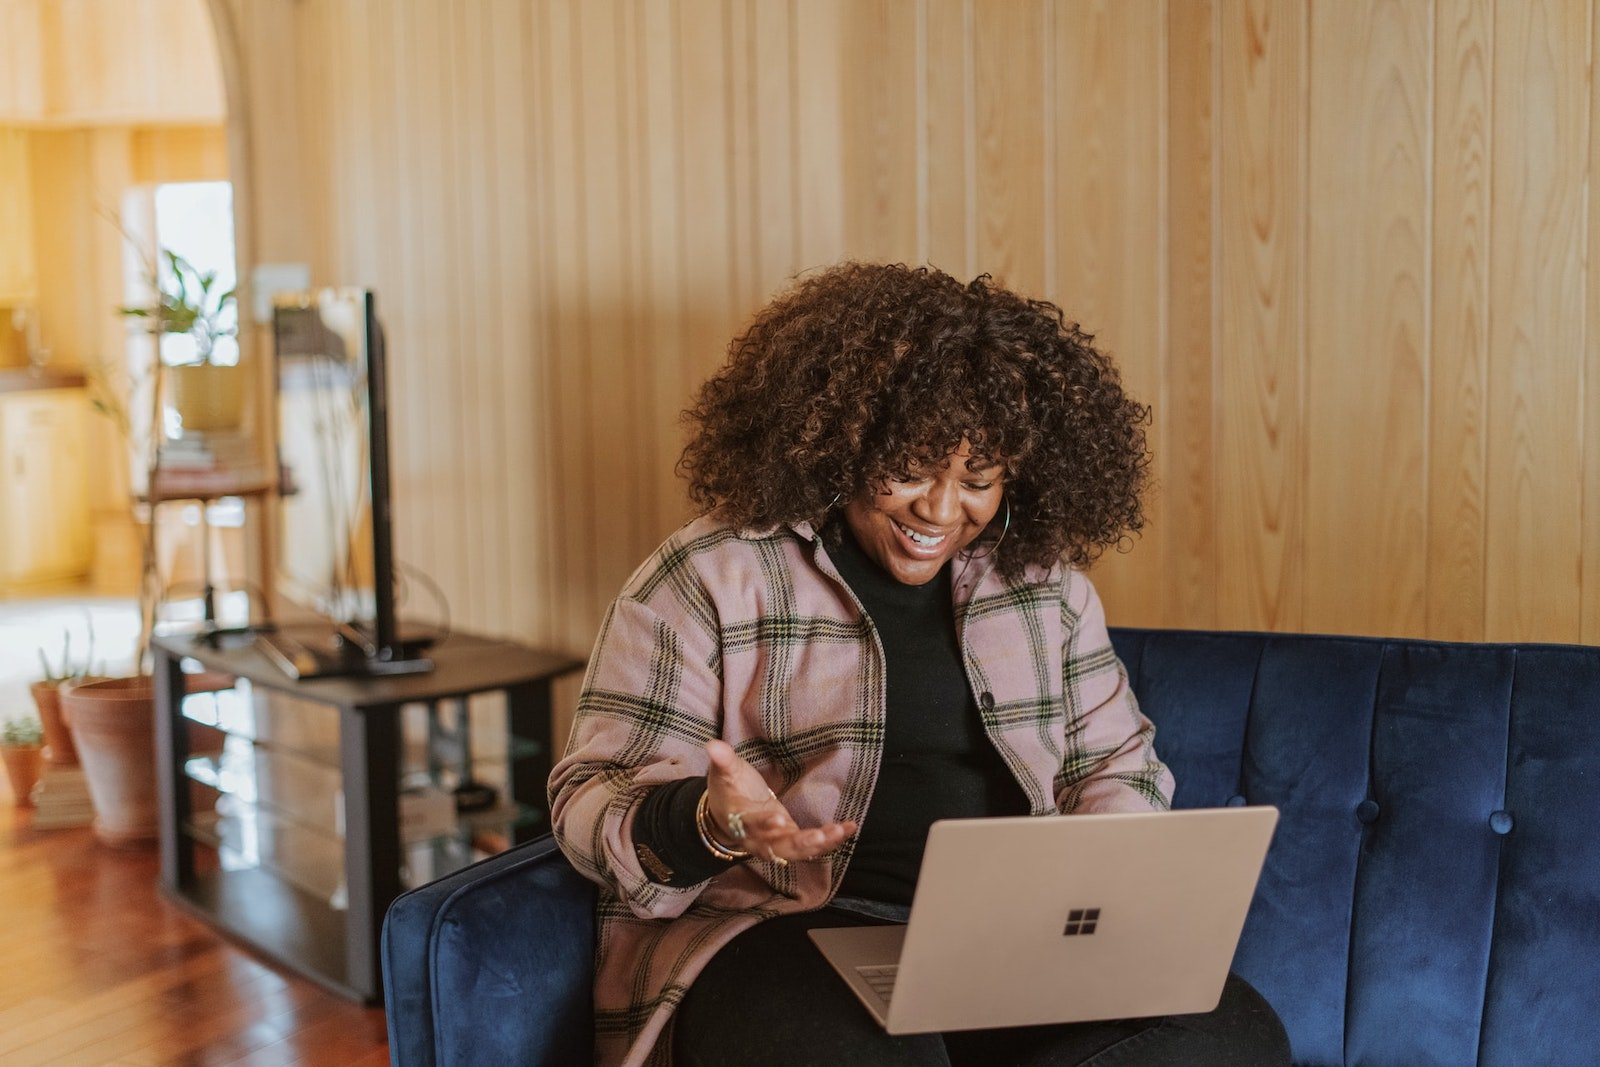 The definition of flexible working